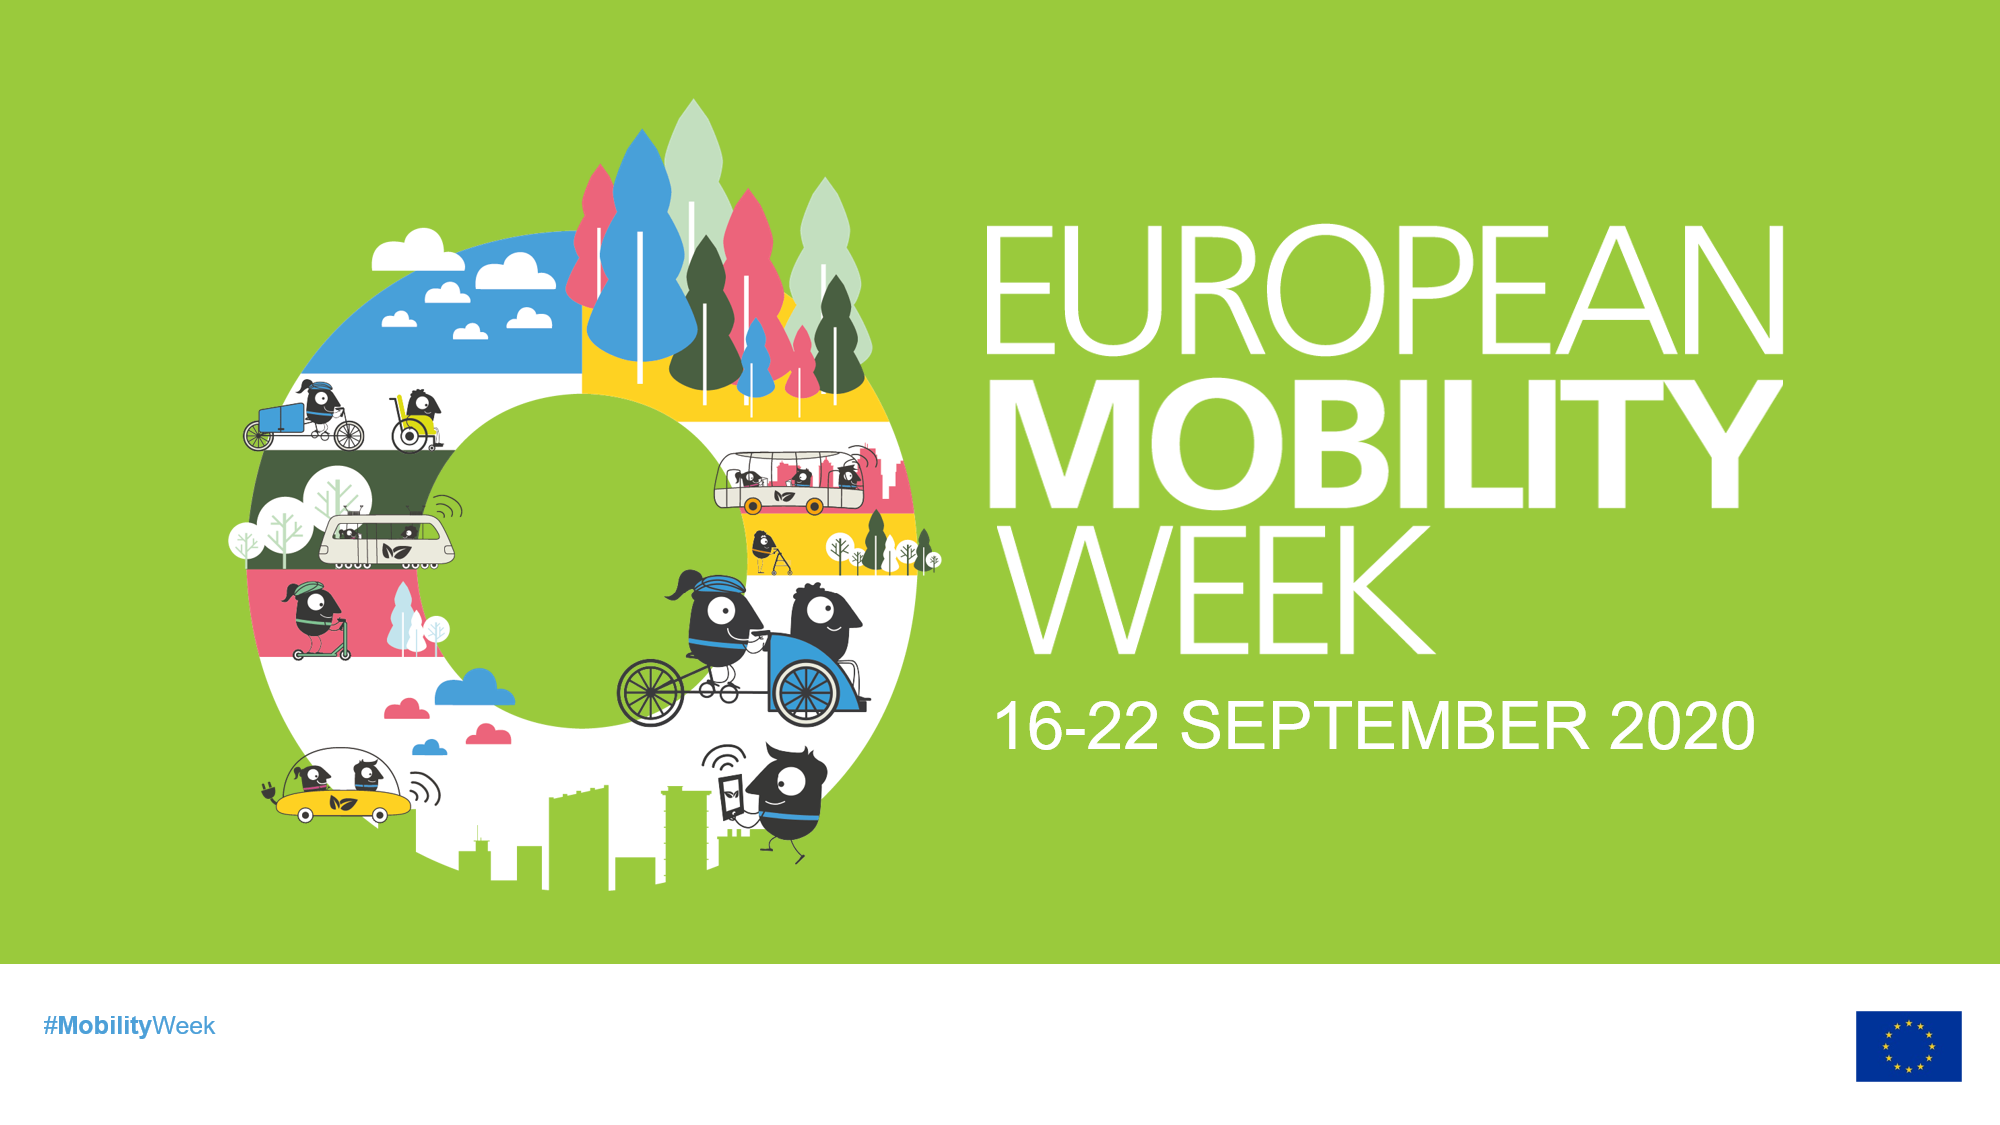 Smart Cities celebrate the European Mobility Week with the hashtag #WeMoveSmart